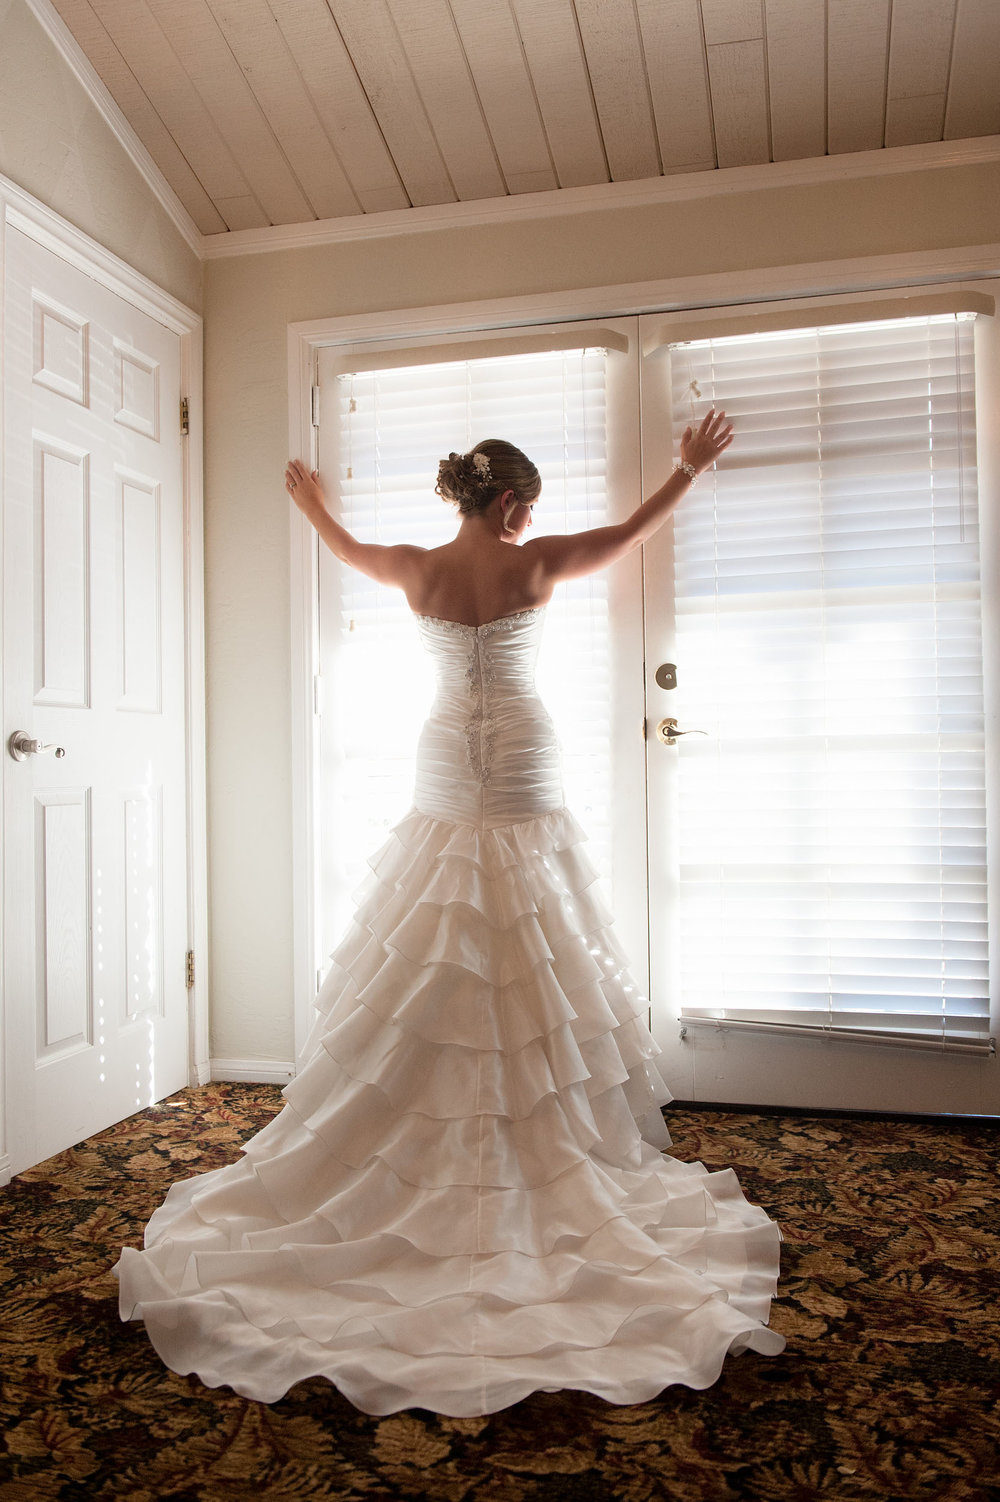 Bride facing window, displaying her wedding dress train at Grand Tradition Estate & Gardens in Fallbrook.